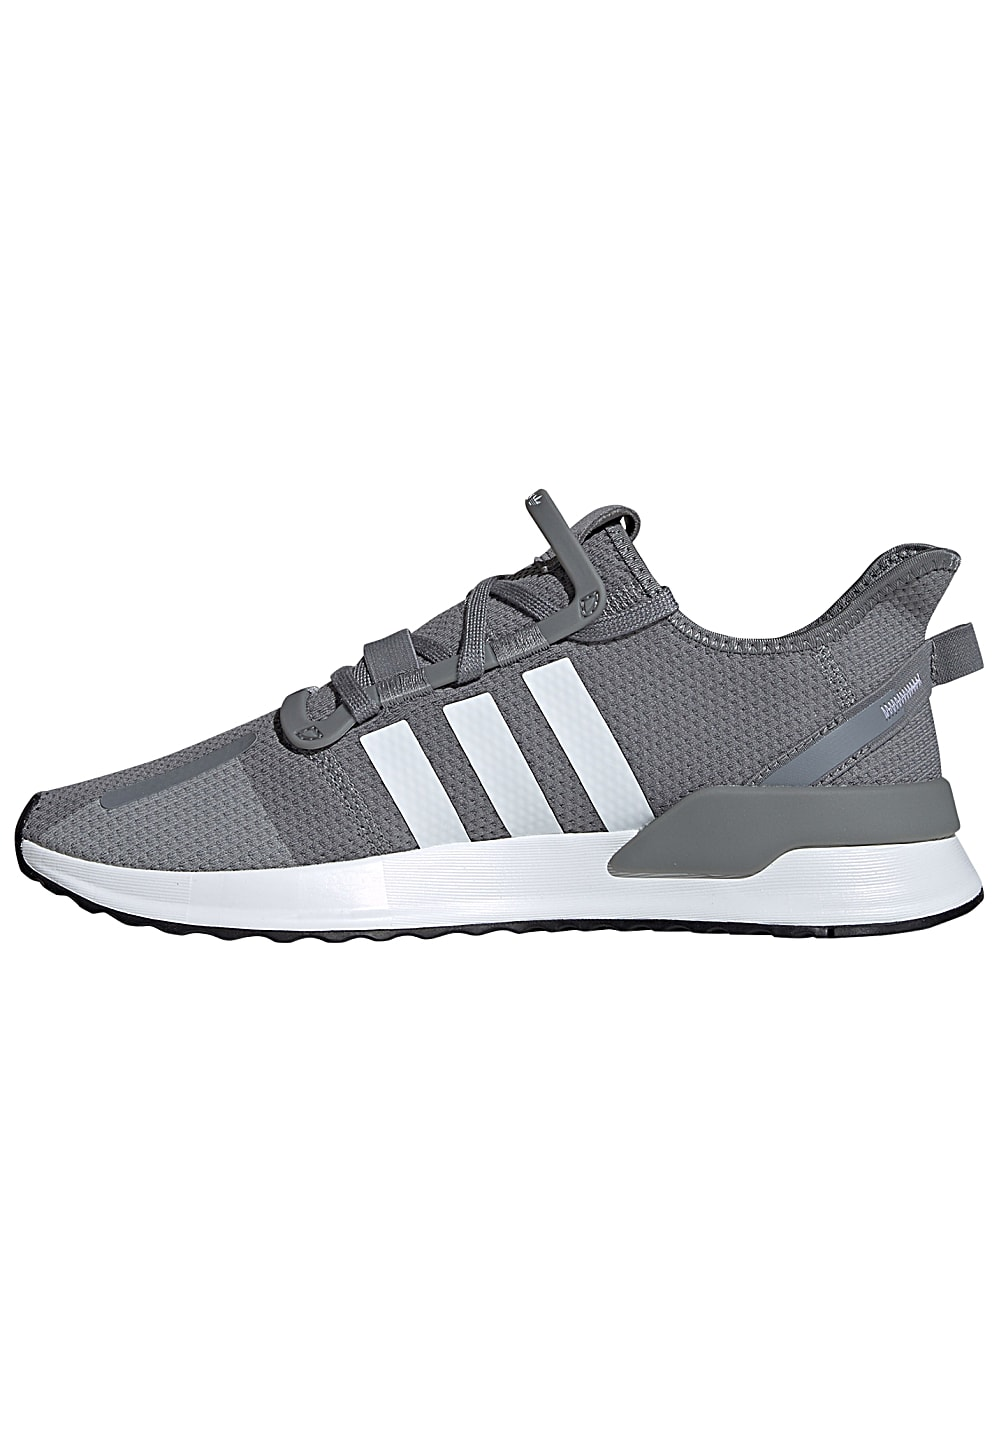 adidas Originals U_Path Run Sneaker für Herren Grau